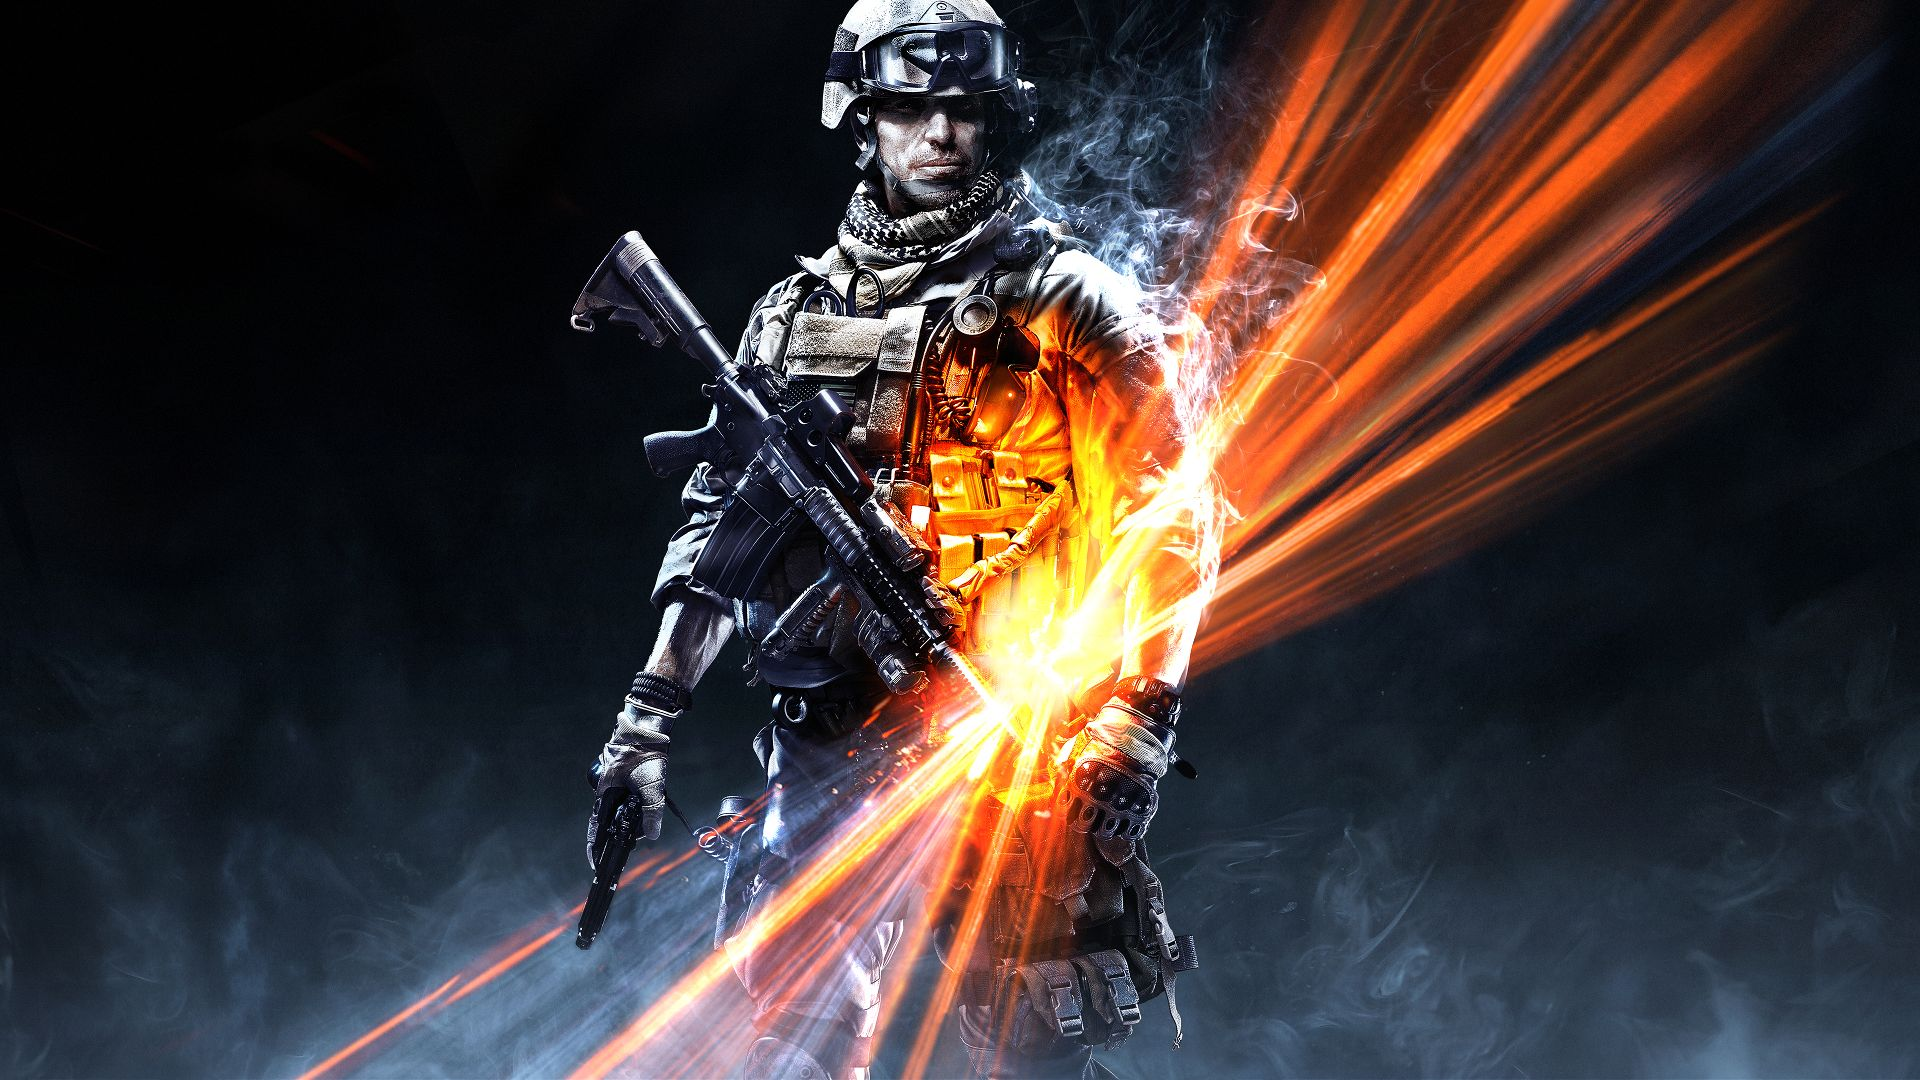 Download Wallpaper 1280x1280 Battlefield 4 Game Ea: Battlefield 3™ Premium For PC